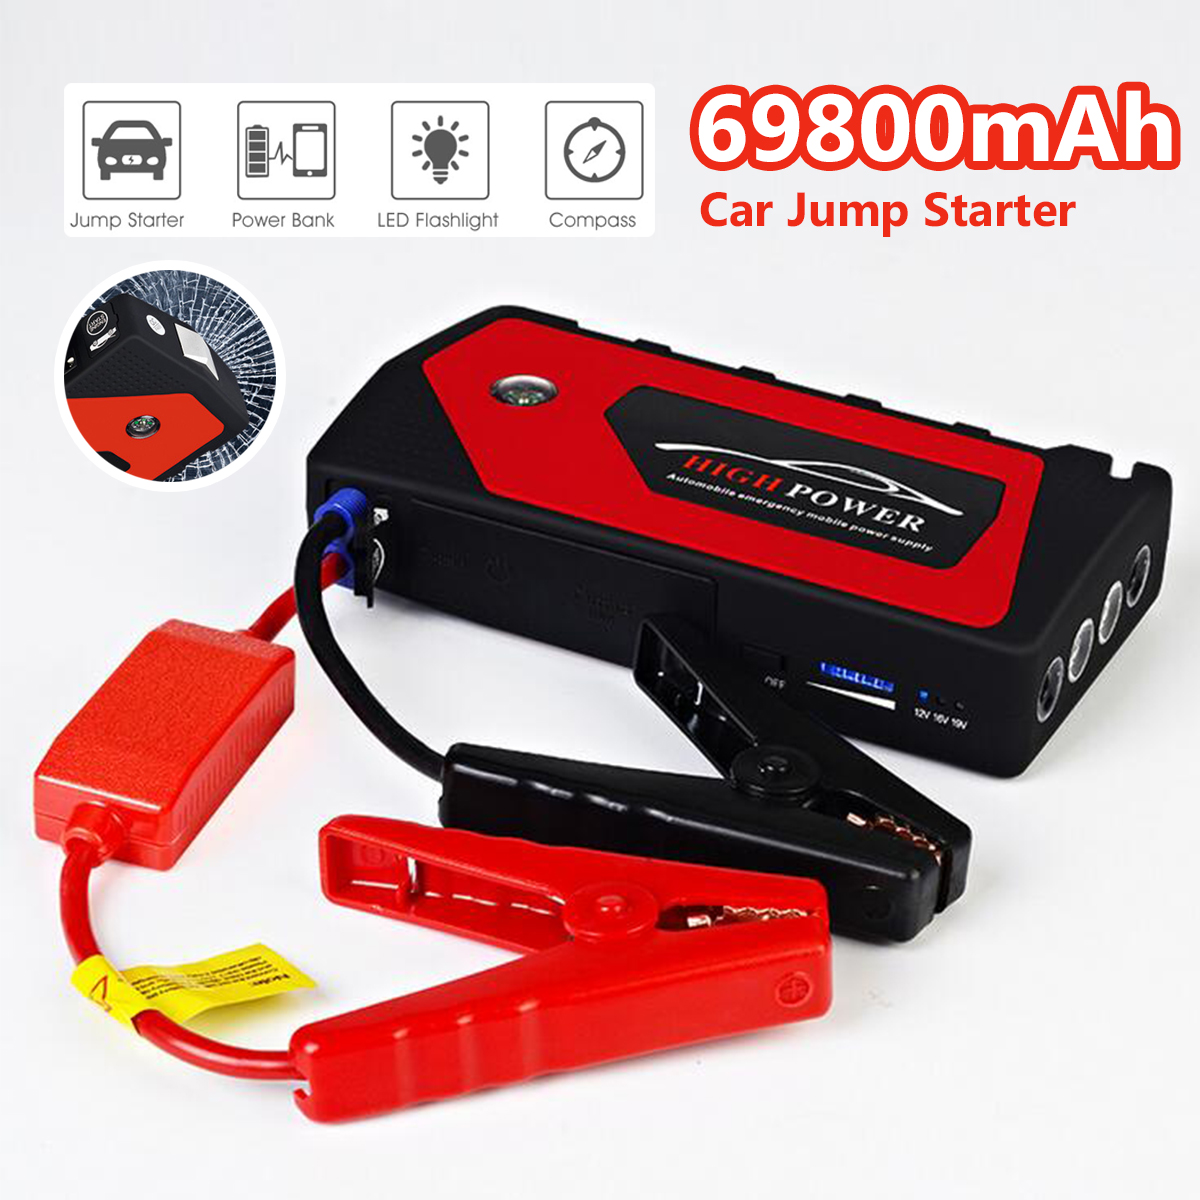 Car Jump Starter Emergency 69800mAh 12V Starting Device 4USB SOS LED Light Mobile Power Bank Car Charger For Car Battery Booster car jump starter emergency 69800mah 12v starting device 4usb sos light mobile power bank car charger for car battery booster led